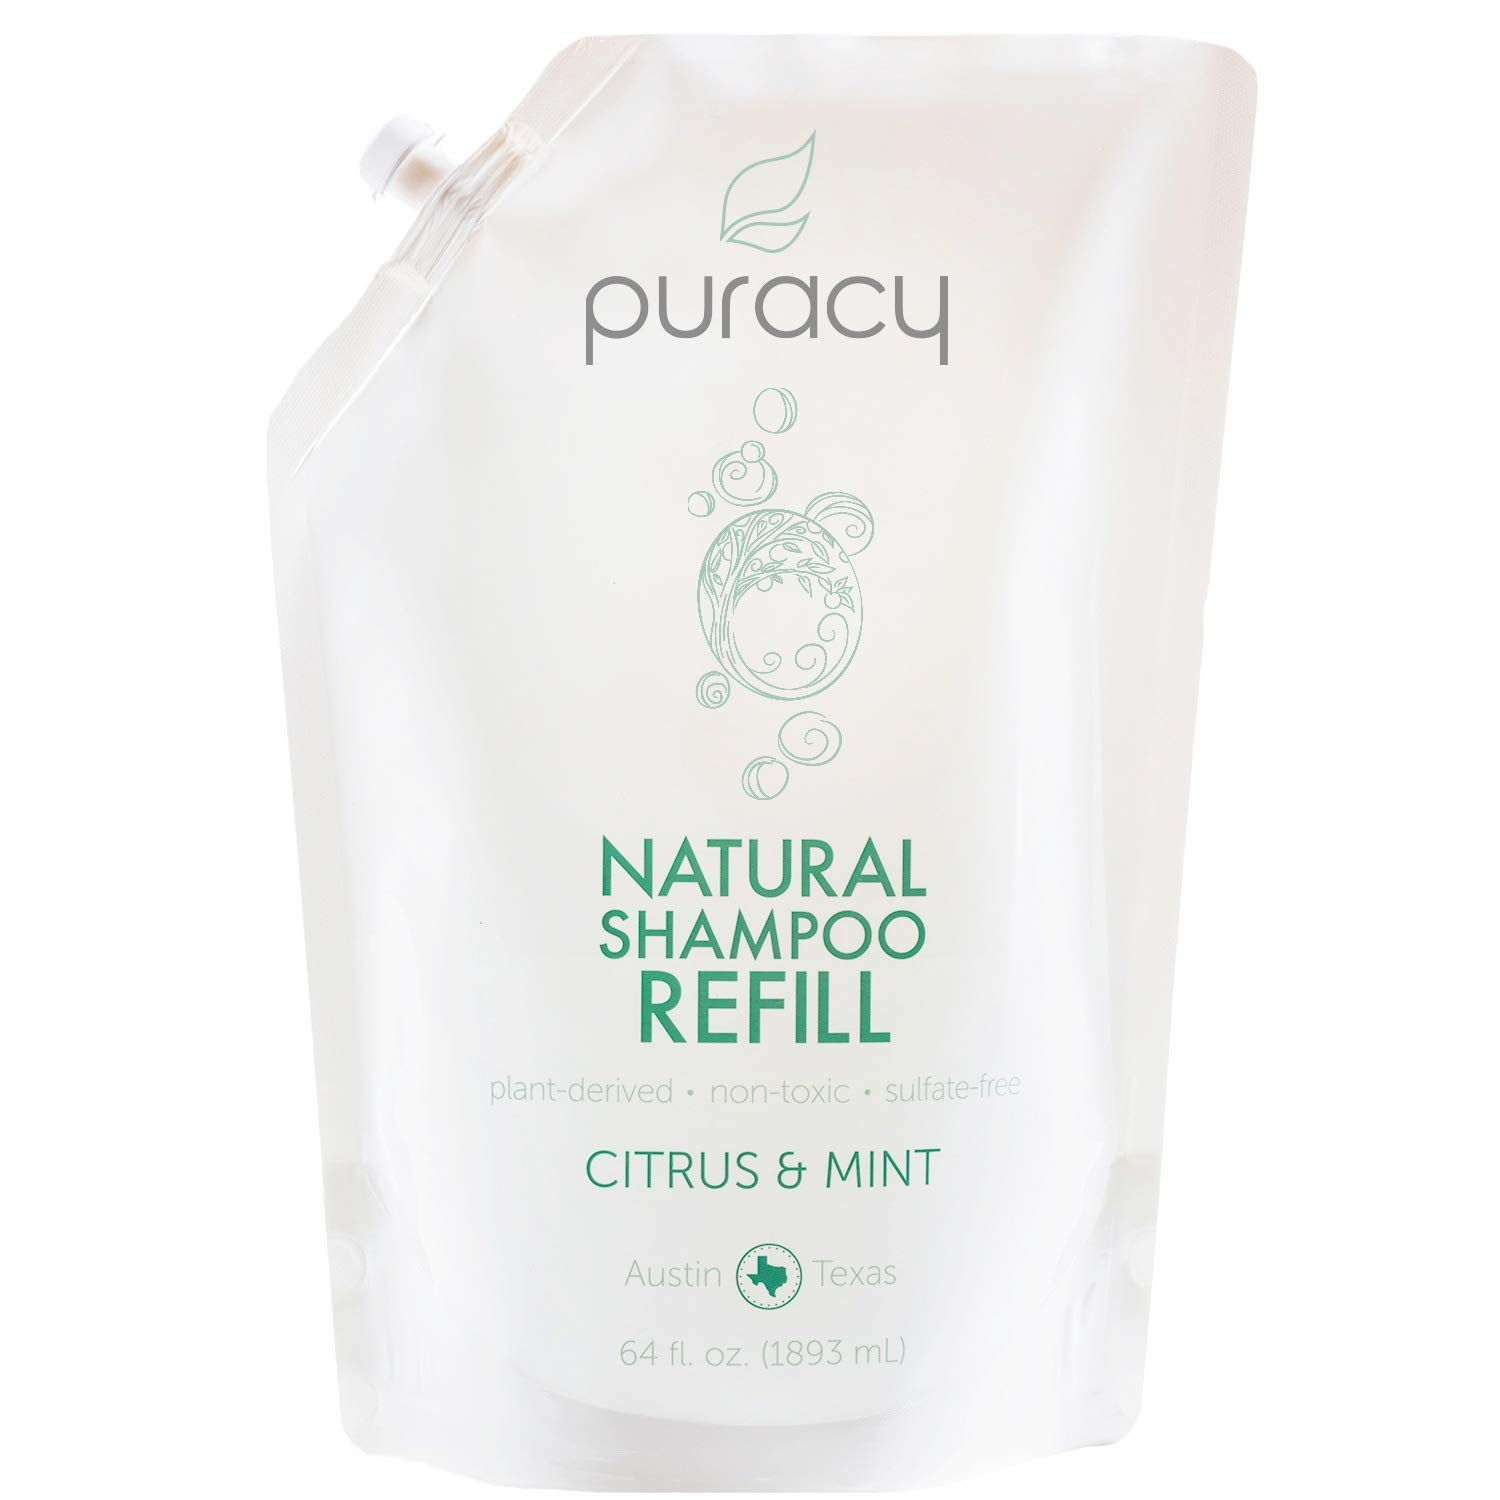 Puracy Natural Daily Shampoo Refill, No Harsh Chemicals, Safe for All Hair Types, 64 Ounce by Puracy